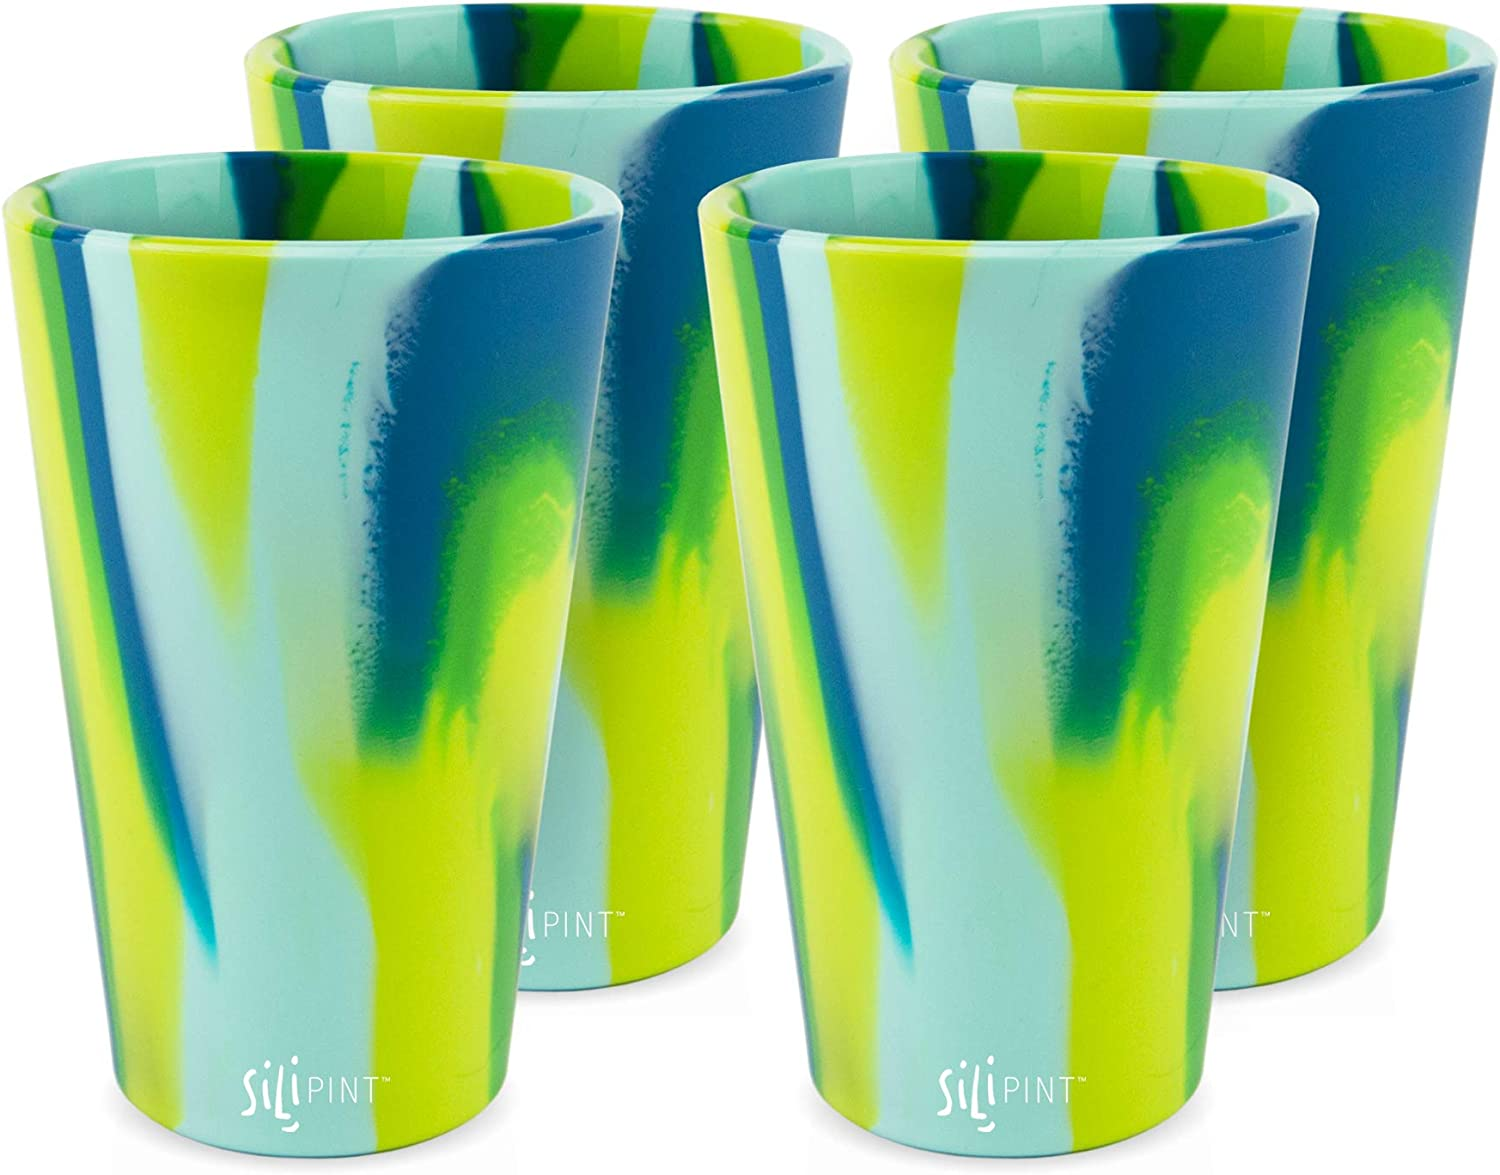 Patented Unbreakable Silicone Cup Drinkware Silipint Silicone Pint Glass Set 4-Pack, Bouncy Black Shatter-proof